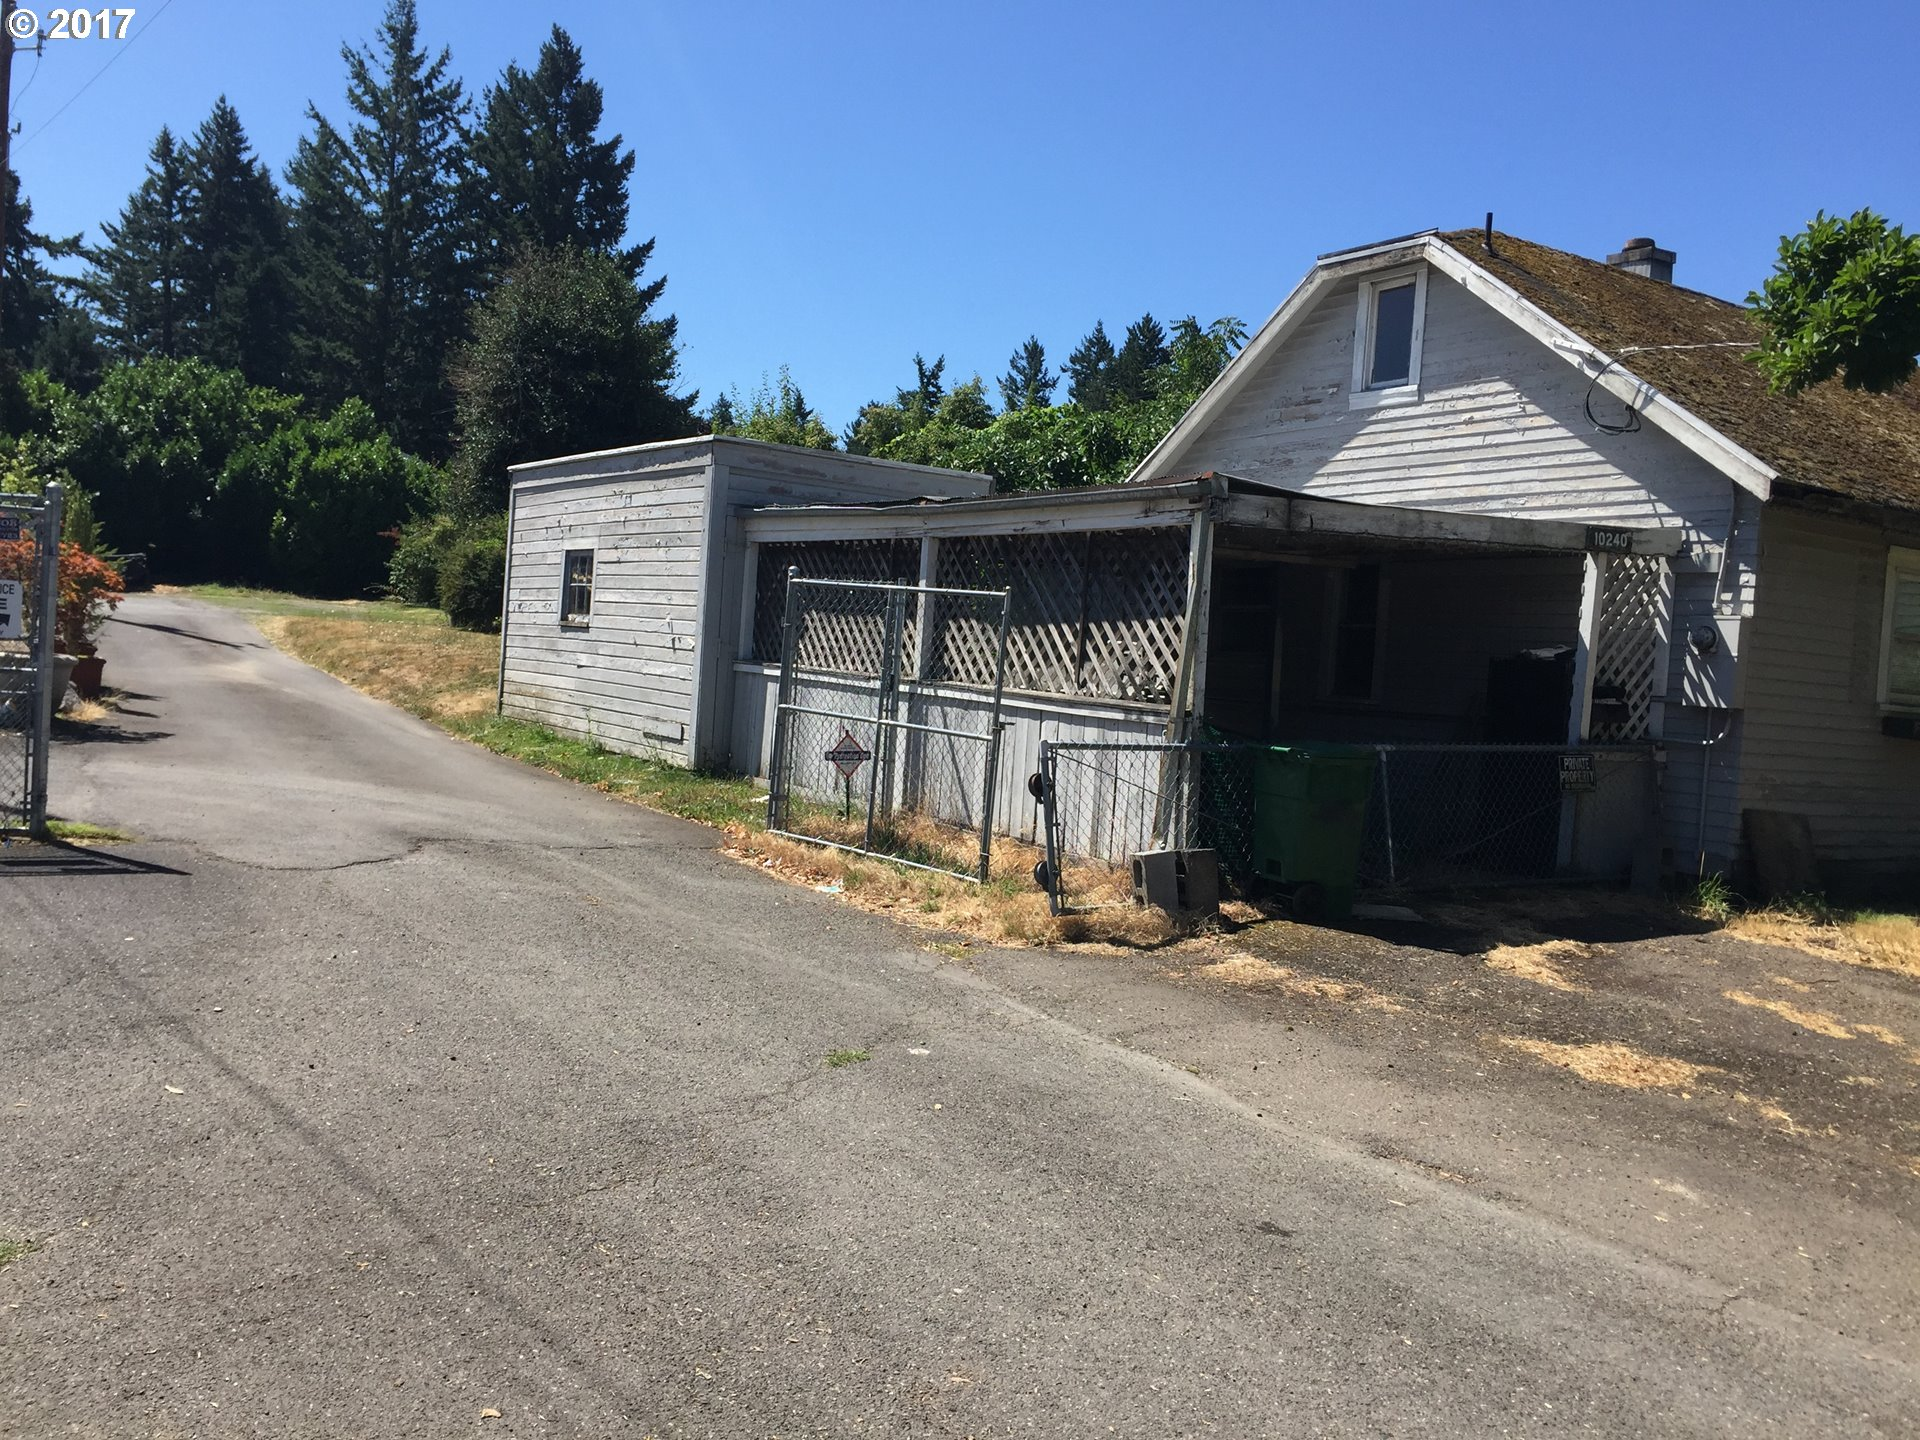 CASH ONLY - House is most likely a tear down. Attention developers - Level 18000sf (60x300) lot zoned R7 for front lot & flag lot - buyer to verify with city. Sold as-is.